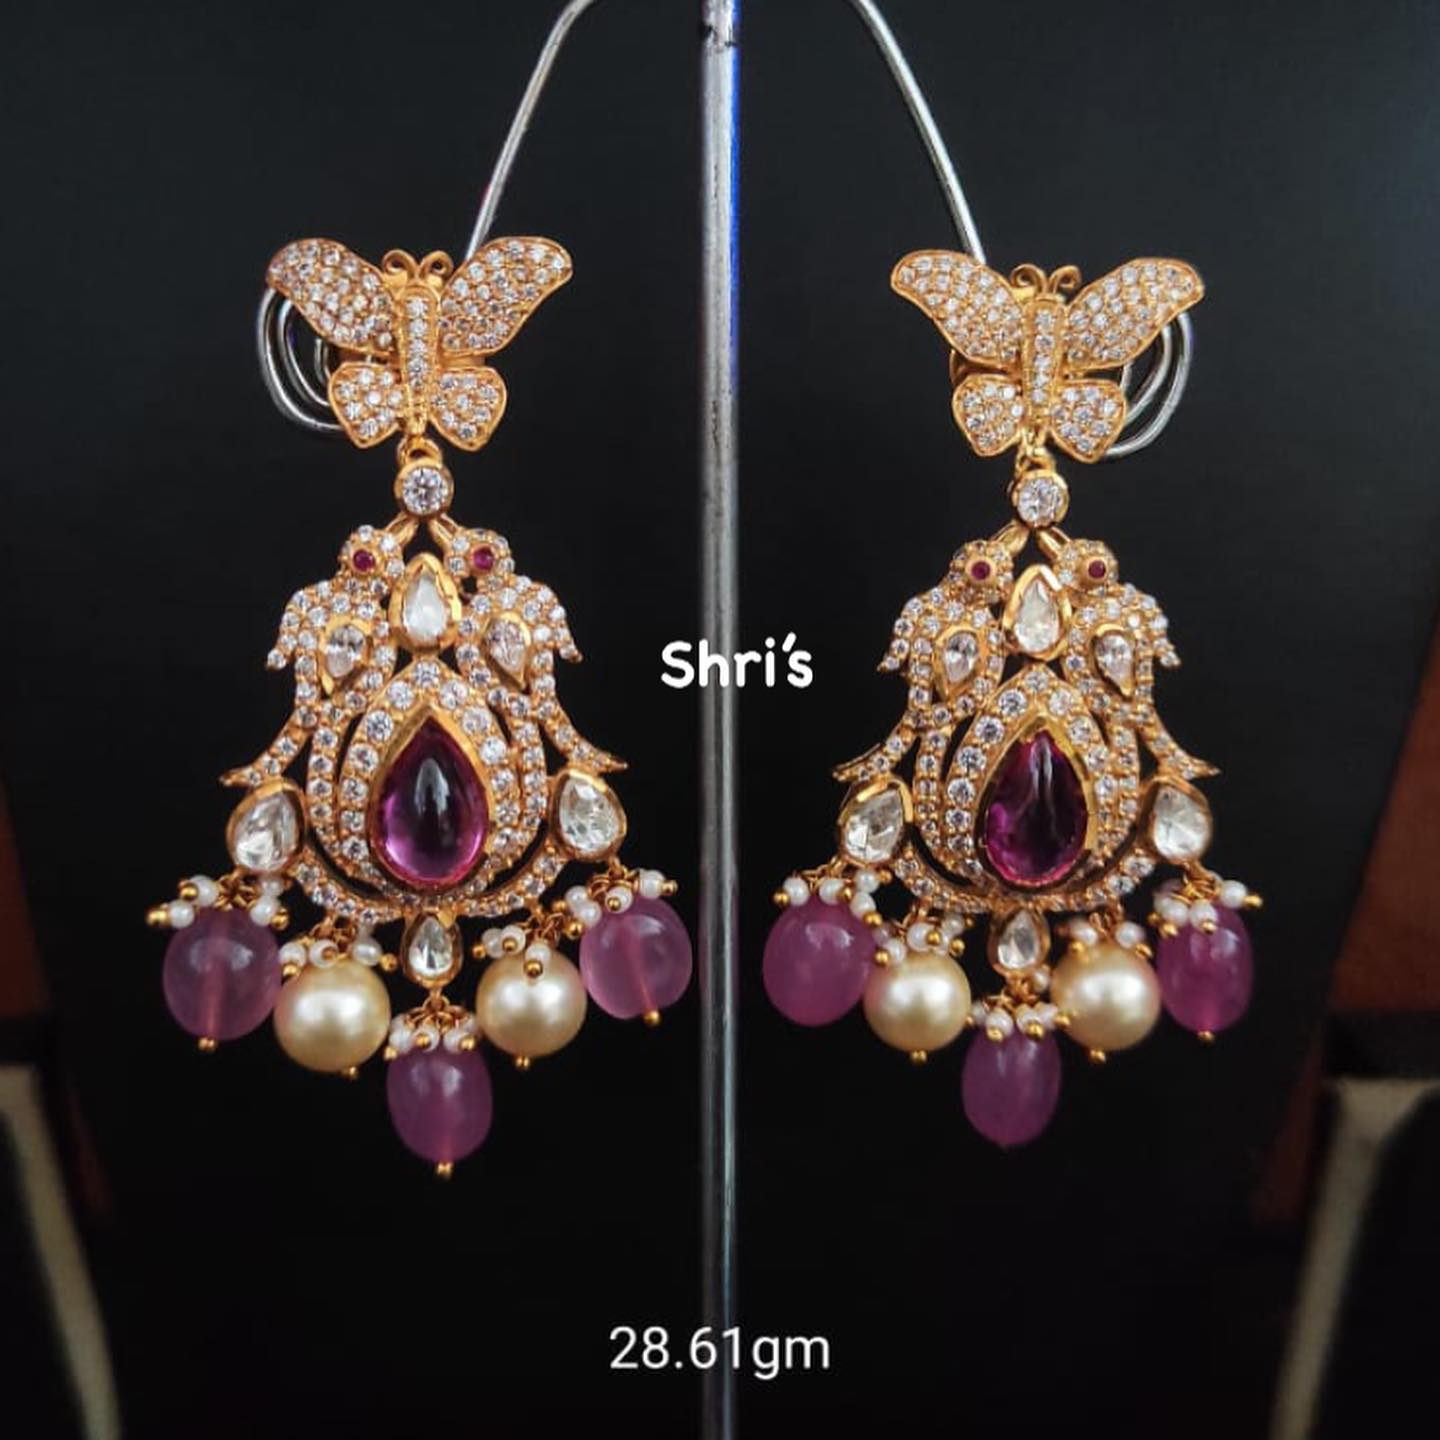 Exclusive Moissanite polki ear rings necklace  Only avlbl  @shrisilverjewellery_28  Gold replica designs in silver For orders Dm @7981196428 2021-07-28